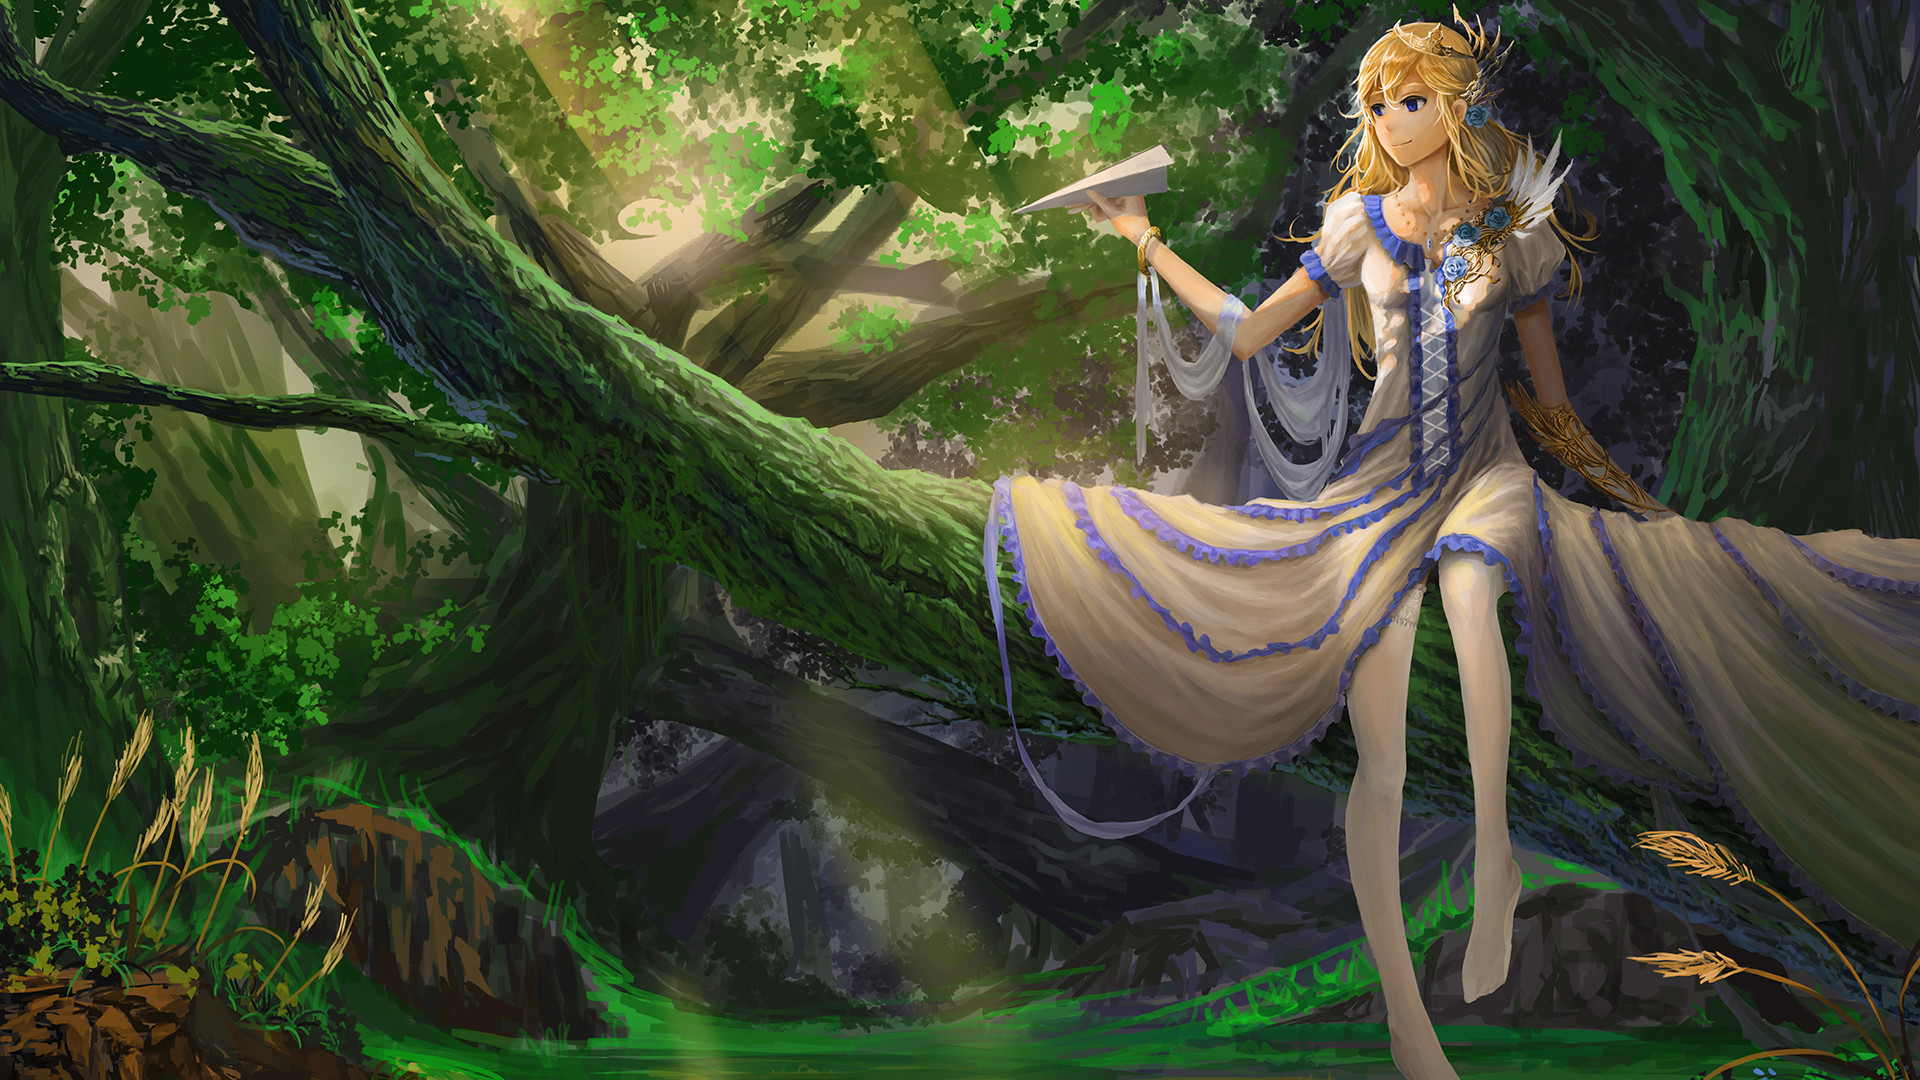 2136 Original (Anime) HD Wallpapers | Backgrounds – Wallpaper Abyss – Page 4